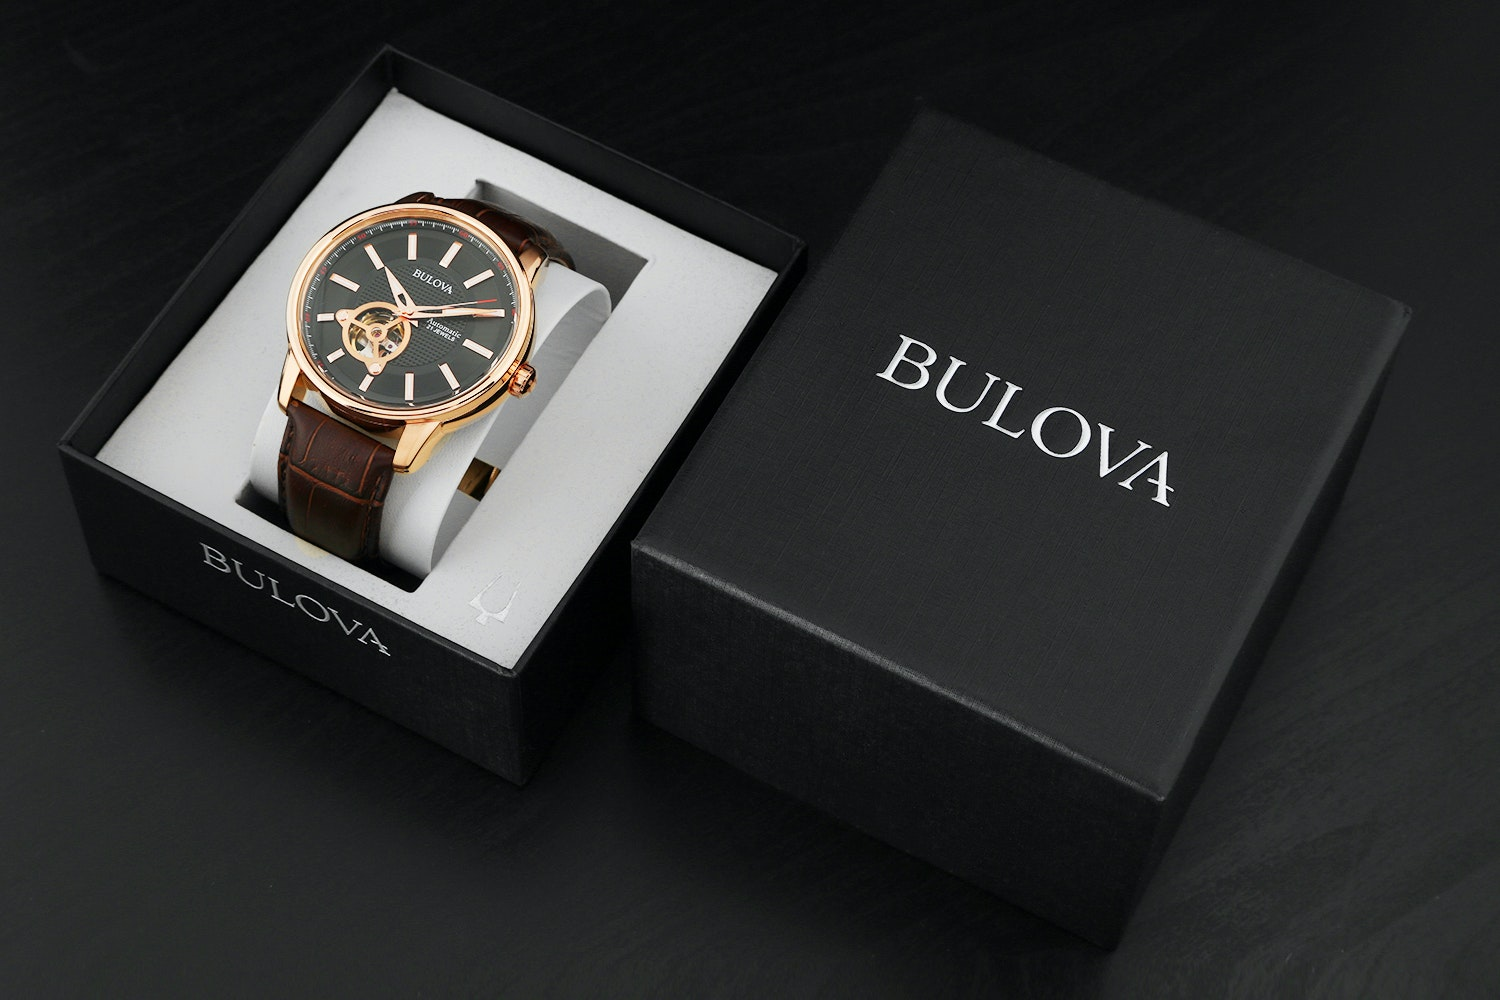 Bulova Automatic Watch